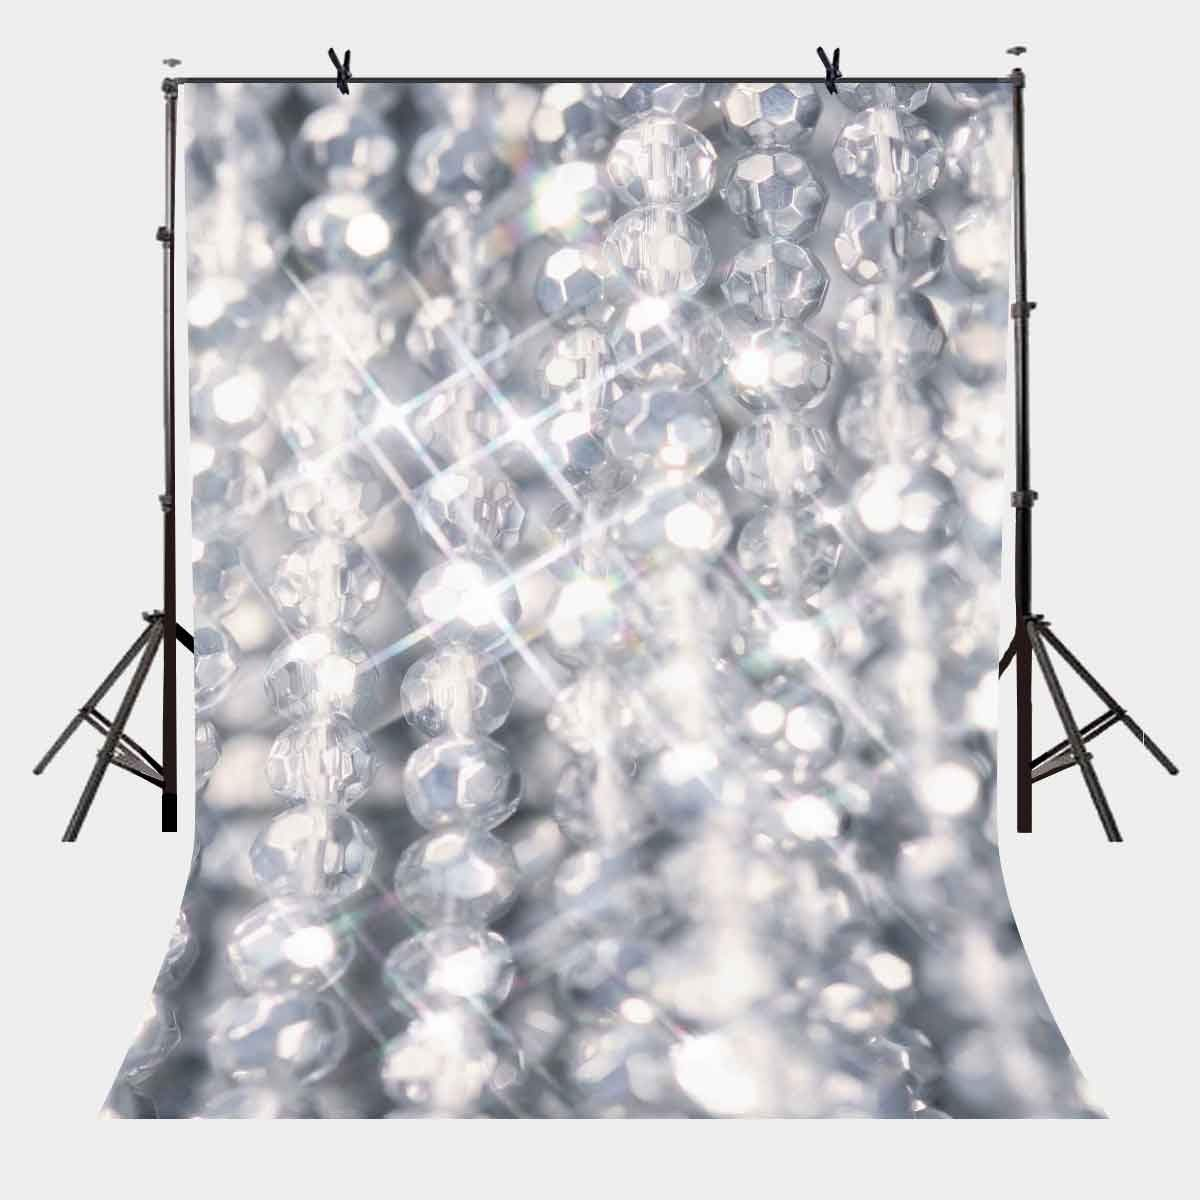 ERTIANANG 5x7ft Shiny Backdrop Shiny Pearl Necklace Photography Background and Studio Photography Backdrop Props